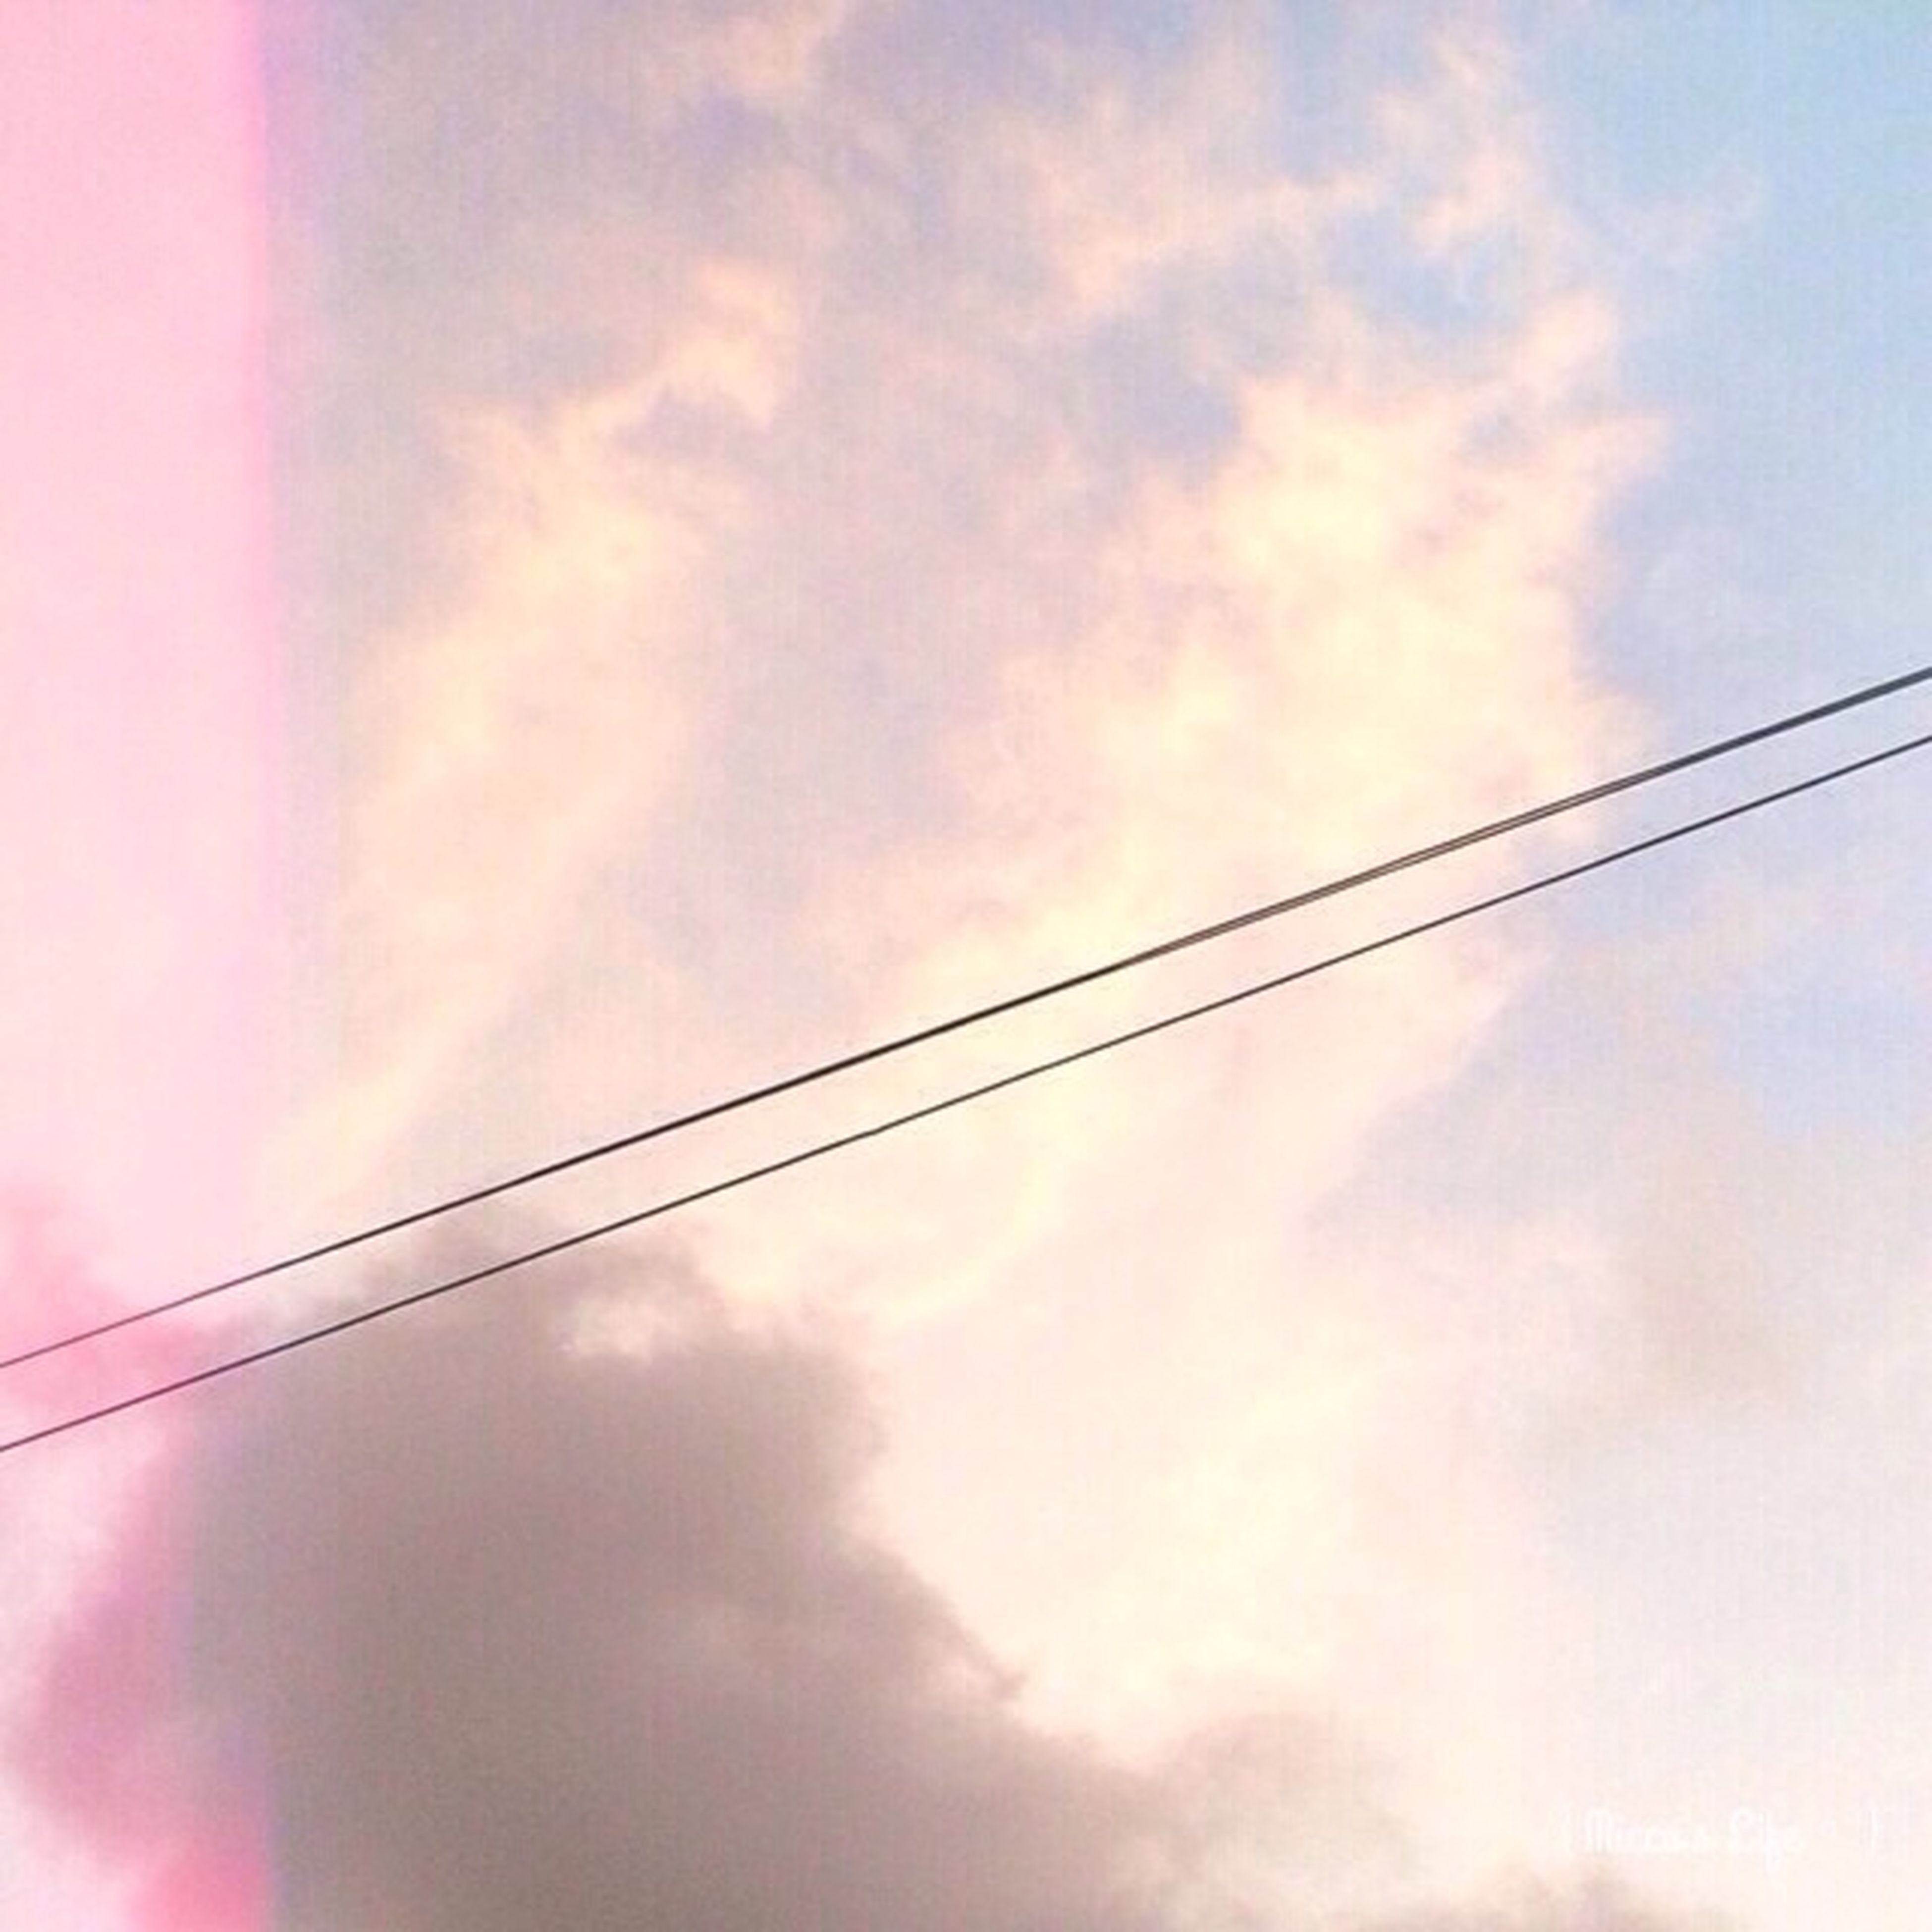 low angle view, sky, cloud - sky, power line, cloudy, cable, cloud, electricity, connection, beauty in nature, nature, power supply, tranquility, scenics, outdoors, no people, electricity pylon, overcast, sunset, tranquil scene